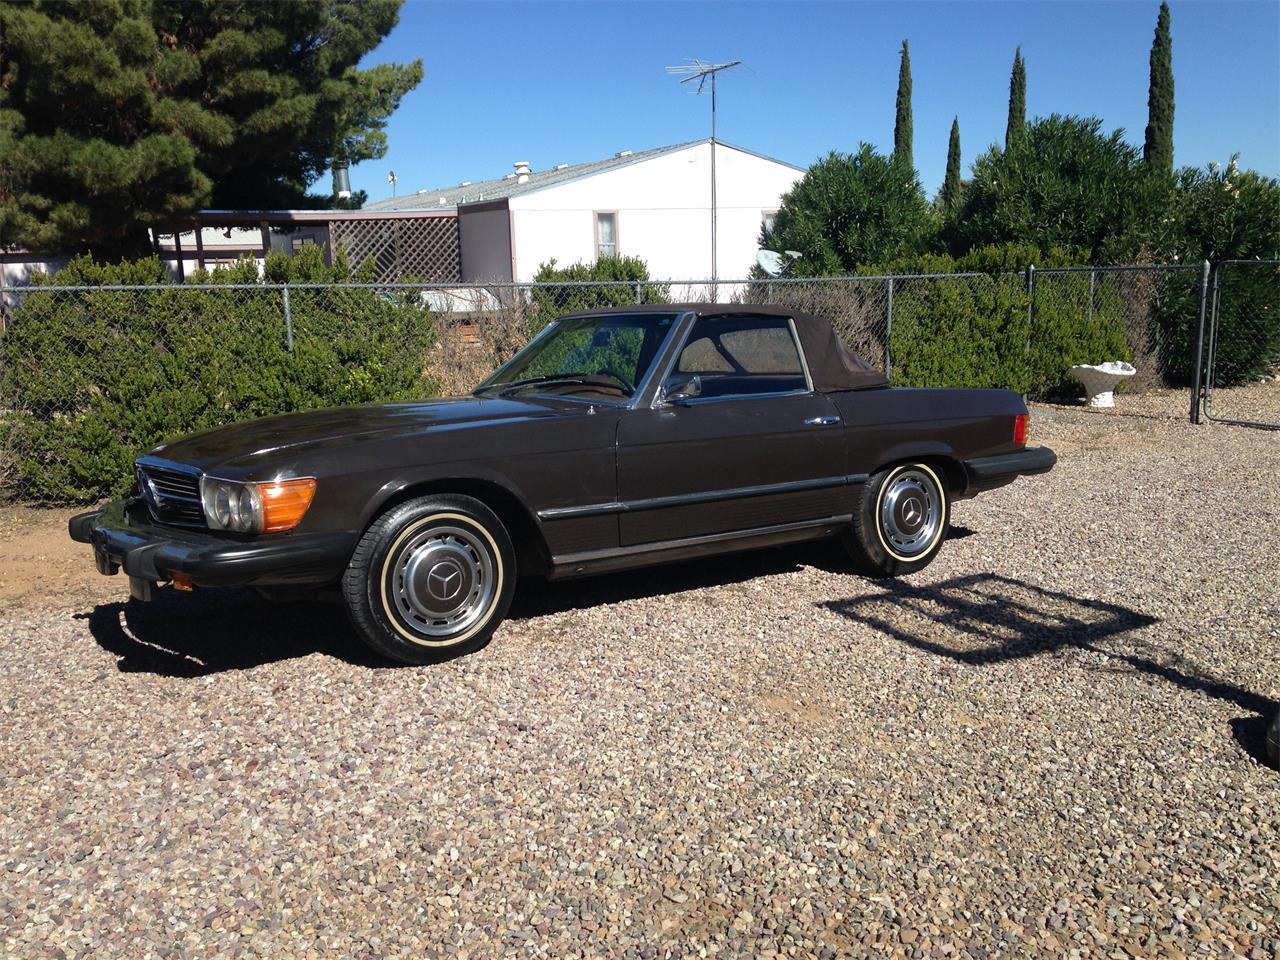 1974 Mercedes-Benz 450SL for sale in Hereford, AZ